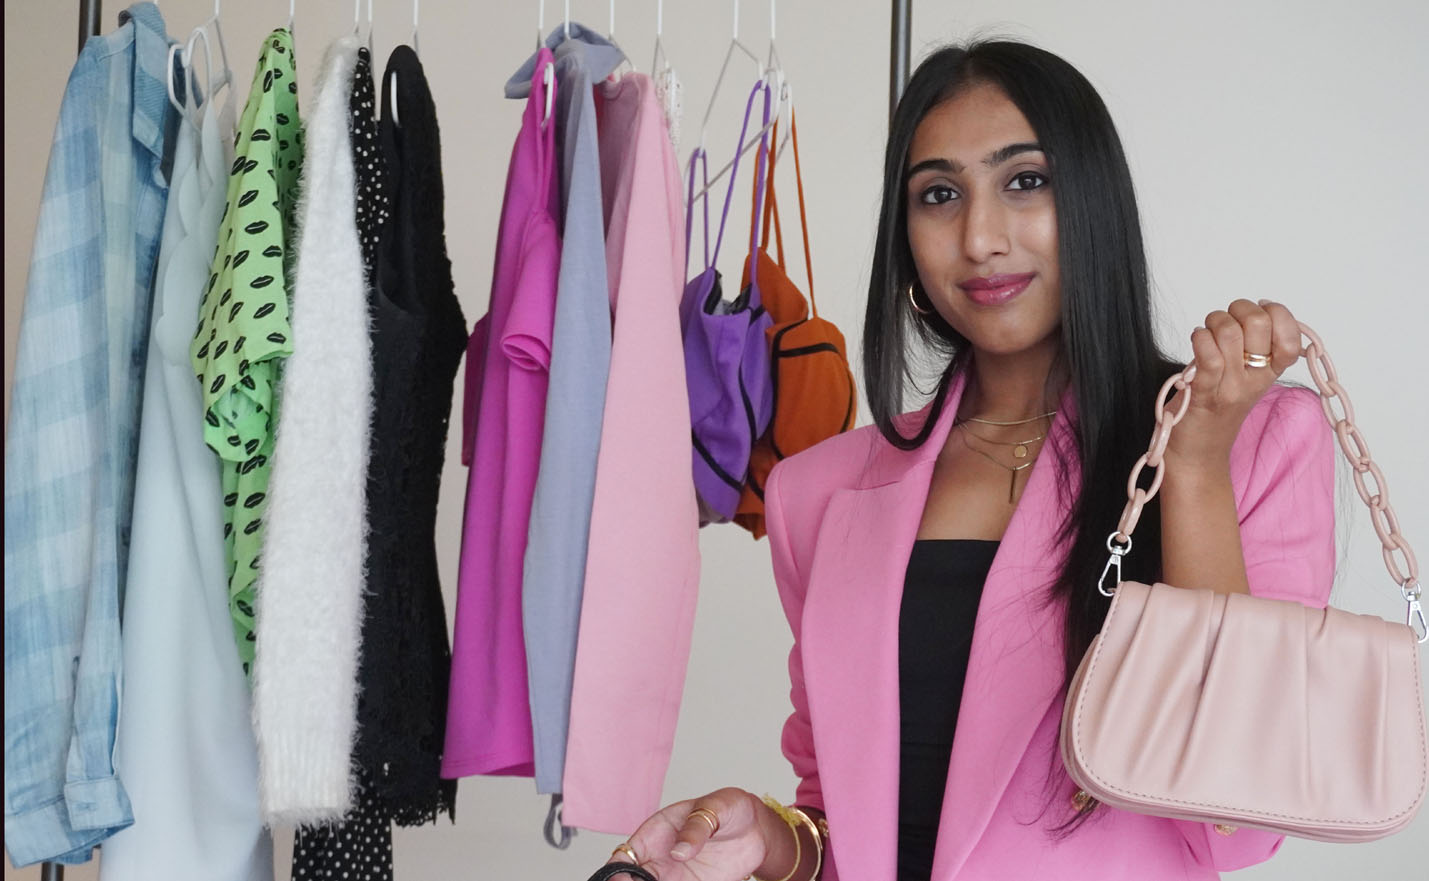 Hyderabad's 17 years old teenager, Trisha not only conceptualises one the of earliest thrift stores in South India but also turns it very successful